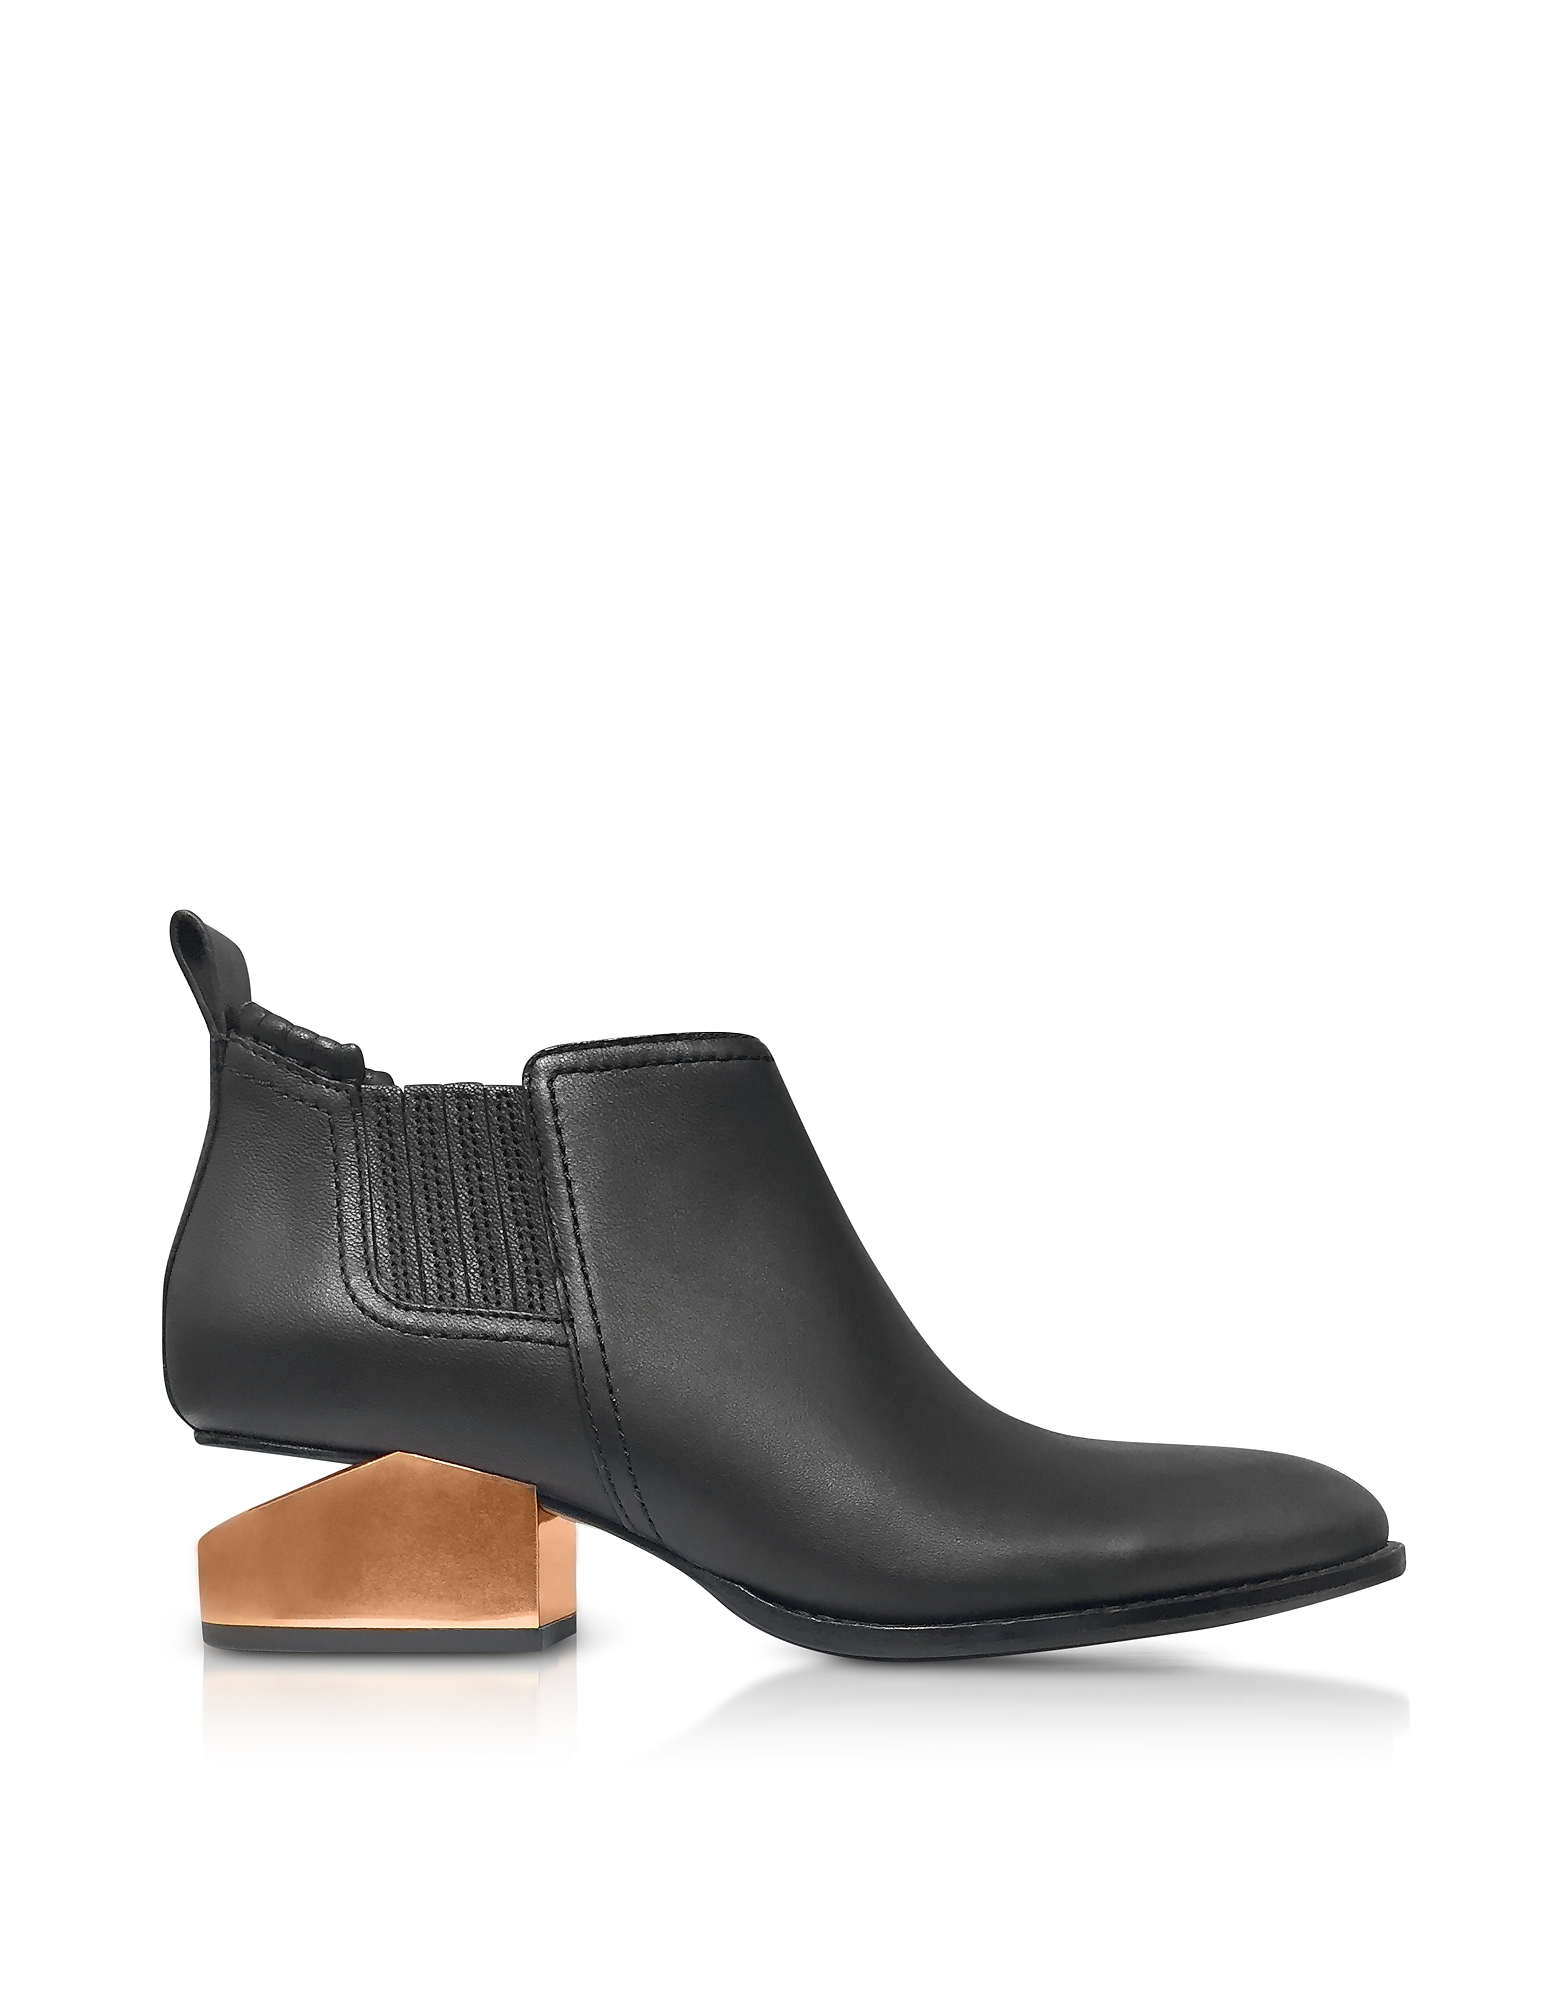 Alexander Wang Shoes, Kori Tumbled Black Leather Anke Boots w/Rosegold Metal Heel